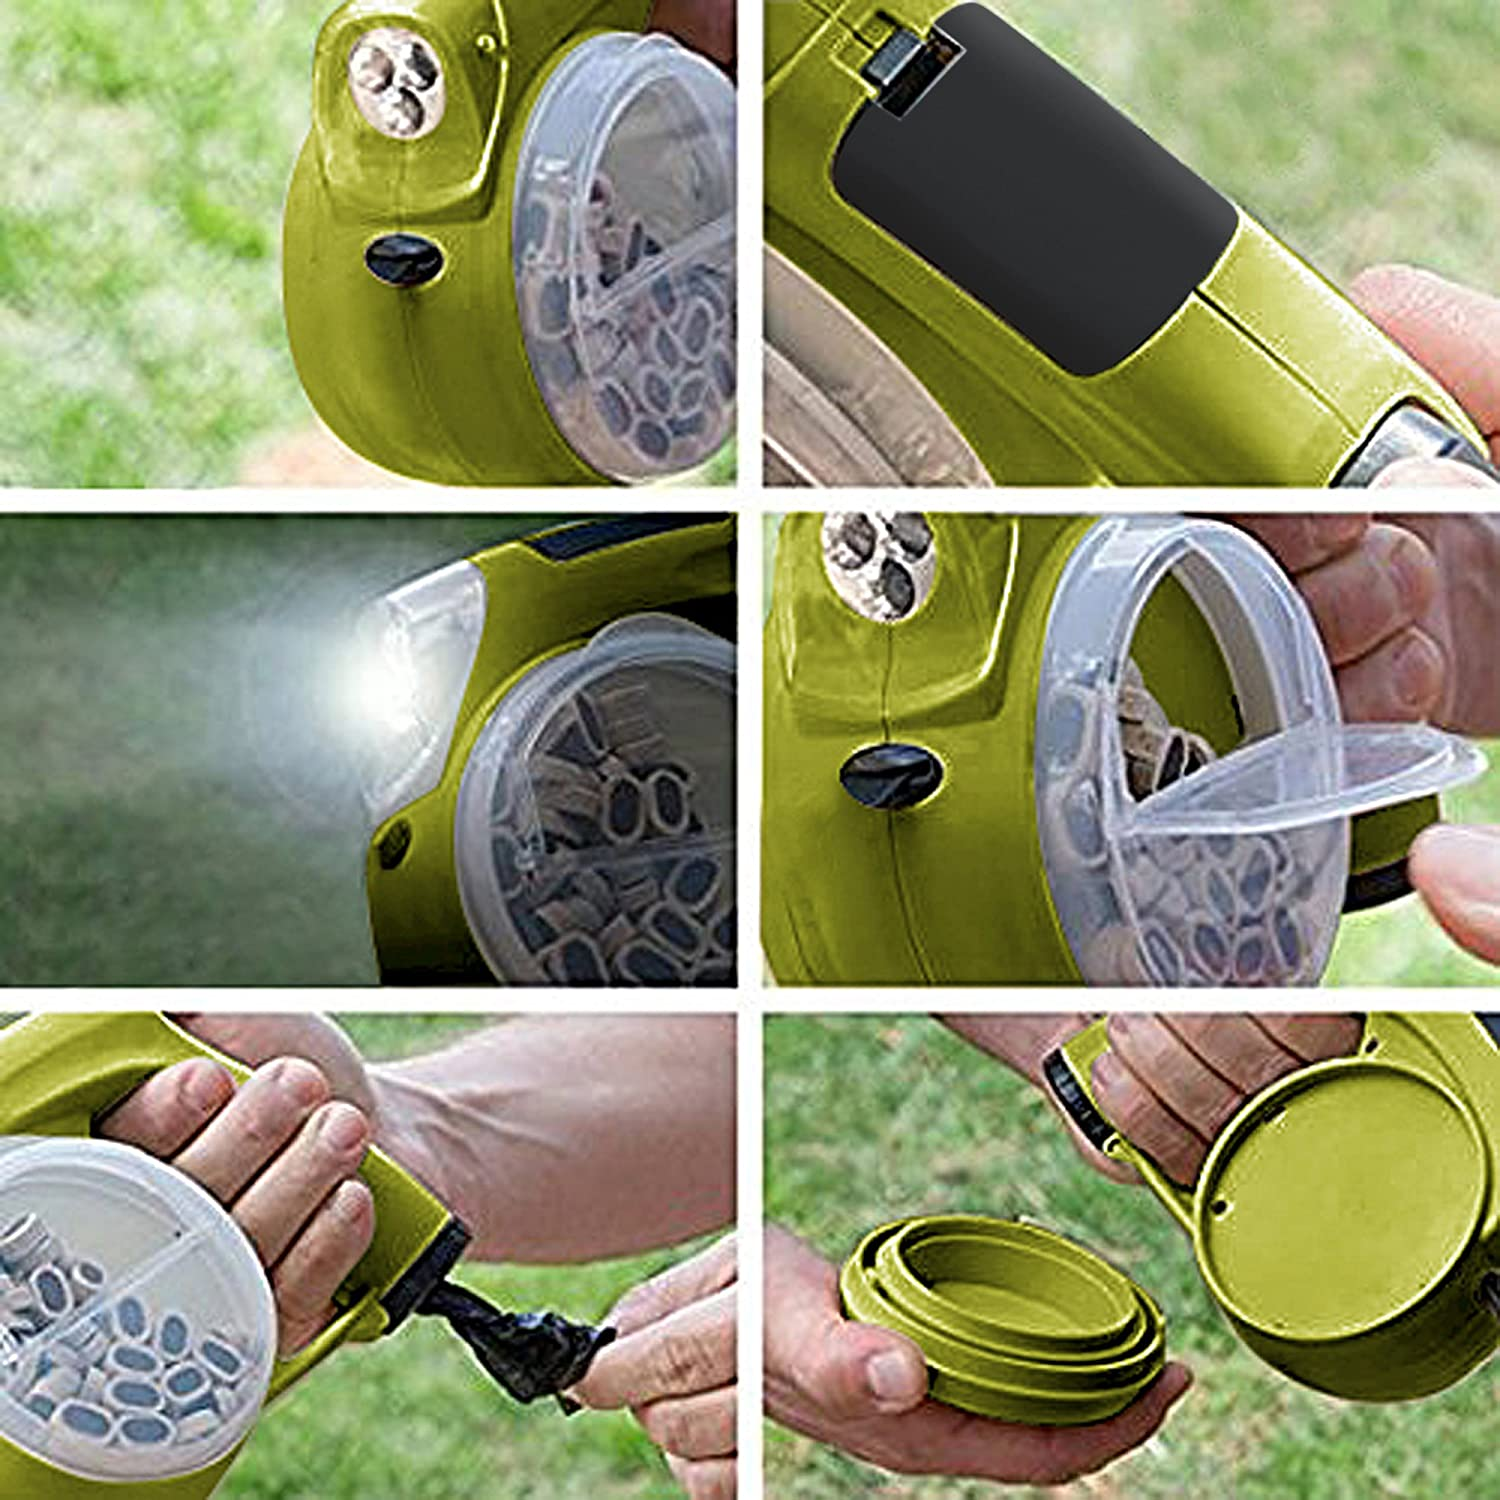 Retractable dog leash with 5 Kimopa functions. Bag dispenser , LED light, water bowl, food storage. With 13 feet is ideal as dog leash for small and medium breeds up to 76 lbs. chic